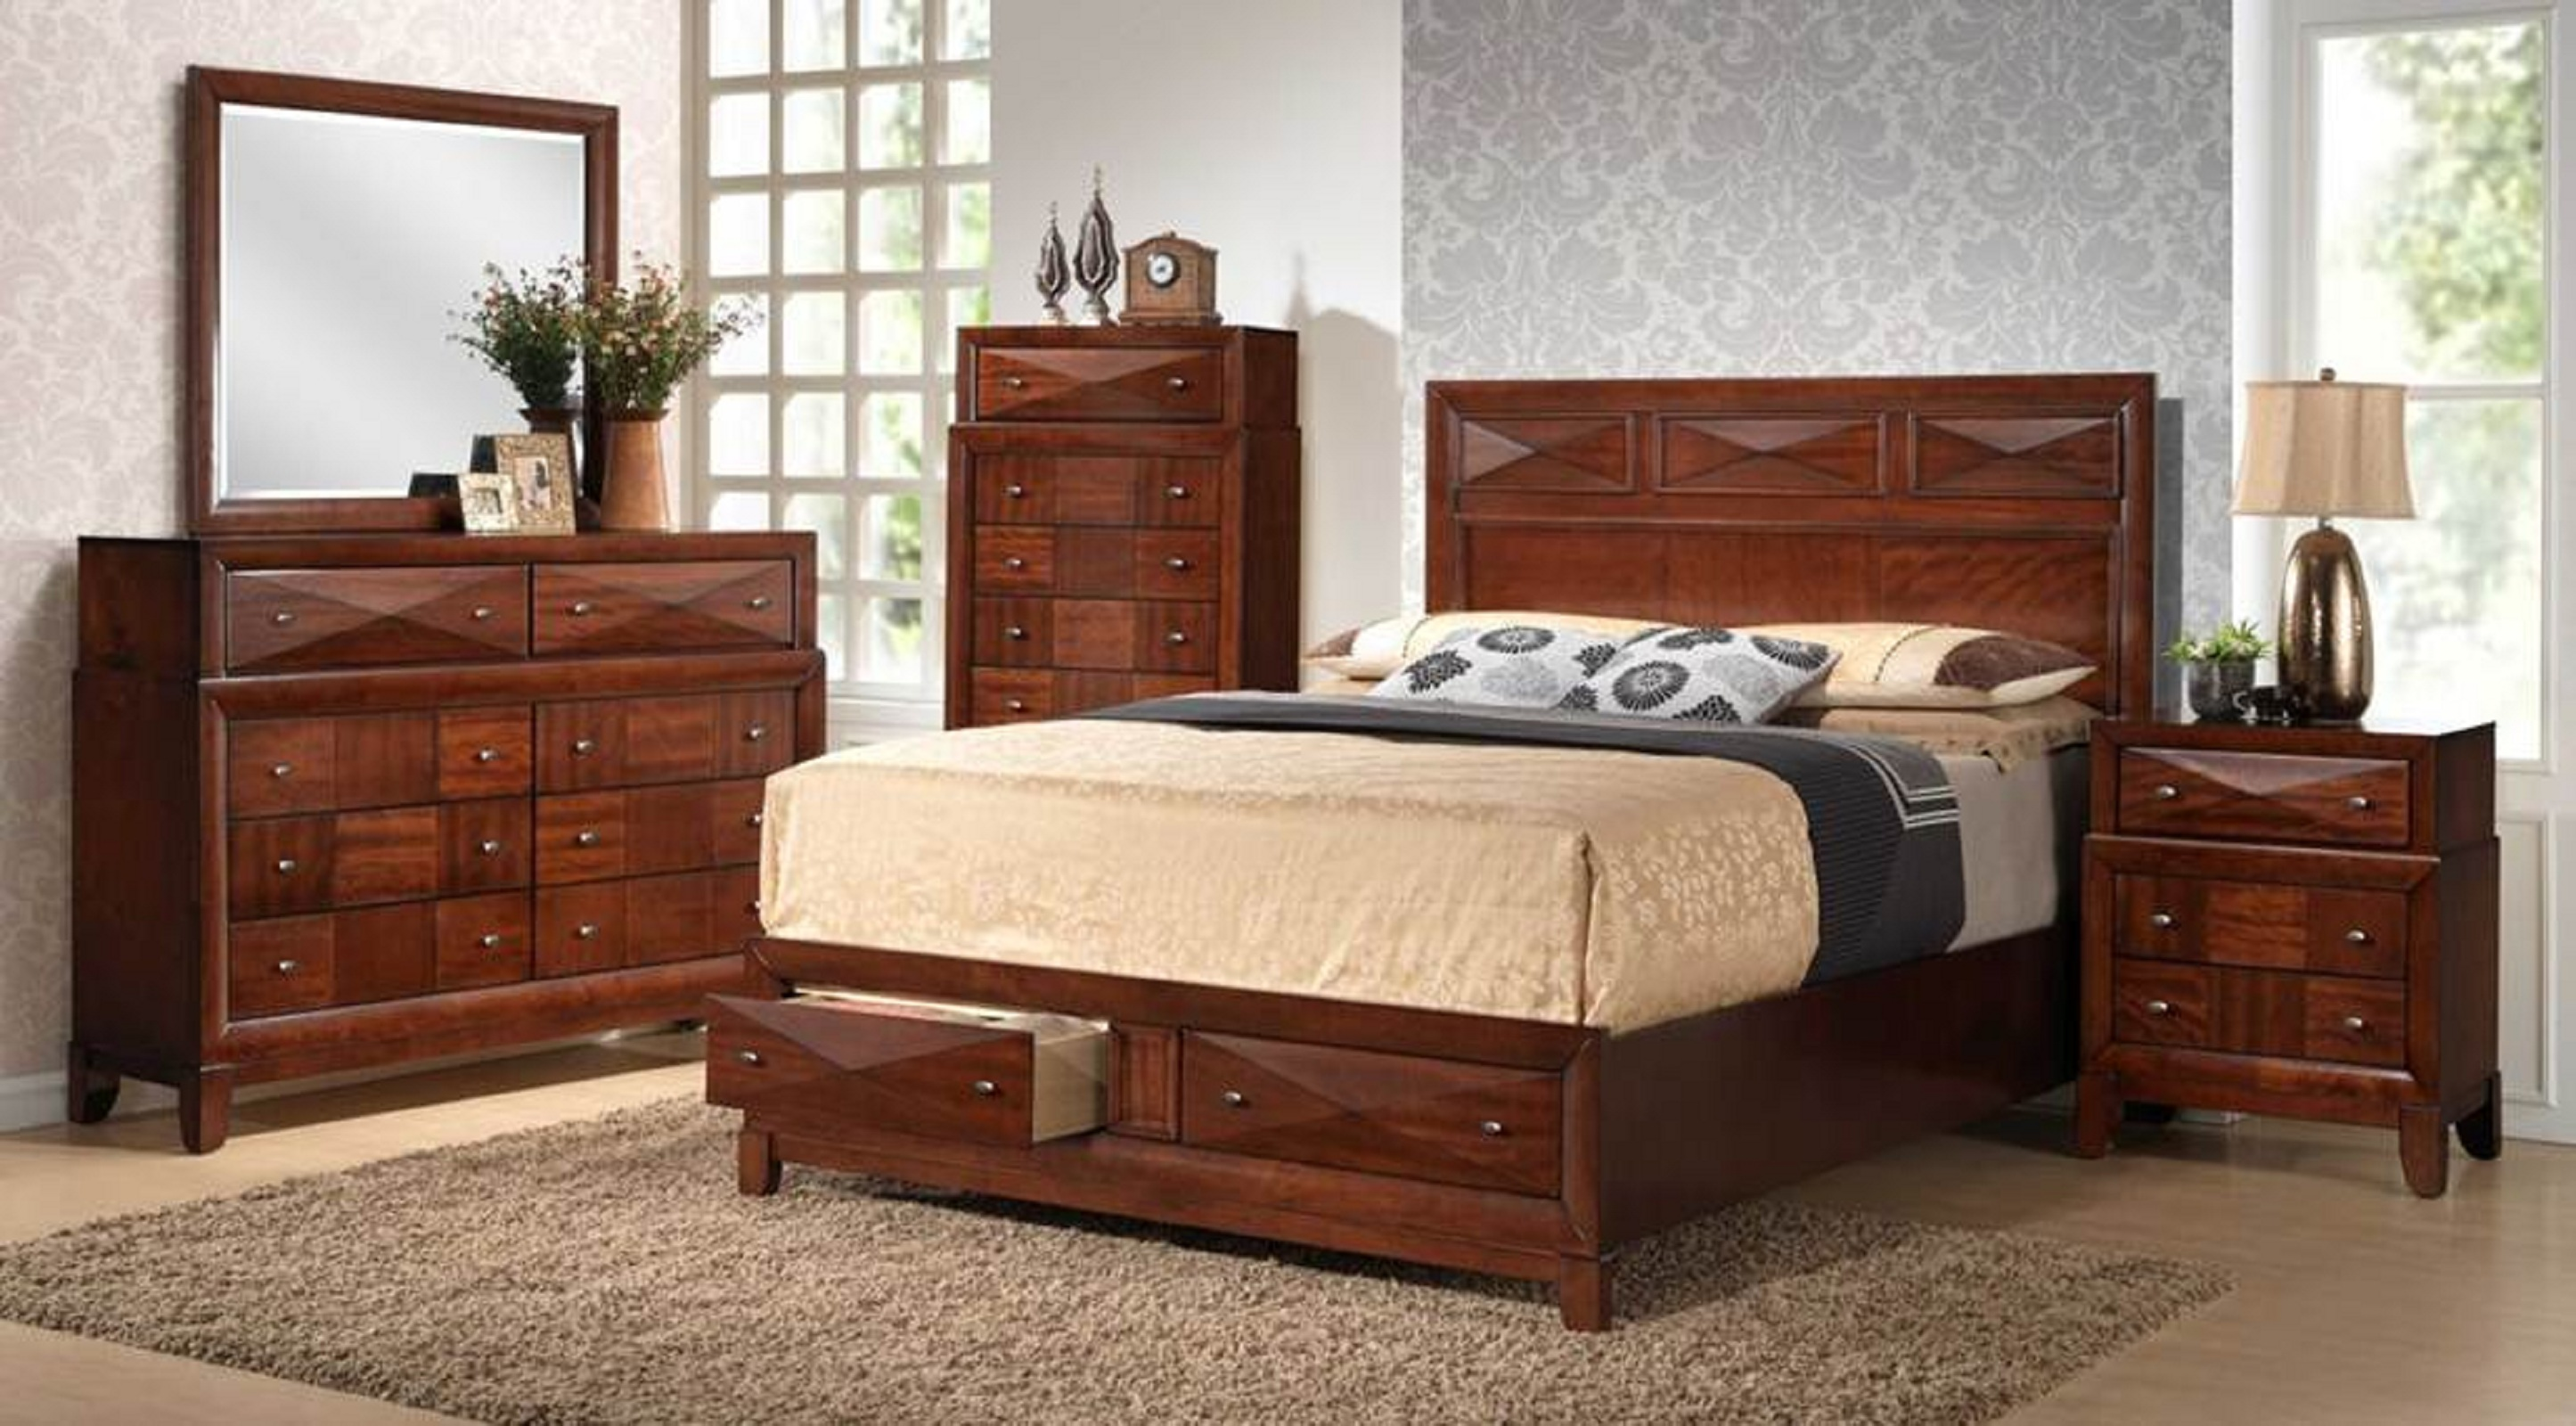 Sears Bedroom Furniture Bedroom Medium Size Comely White Kids